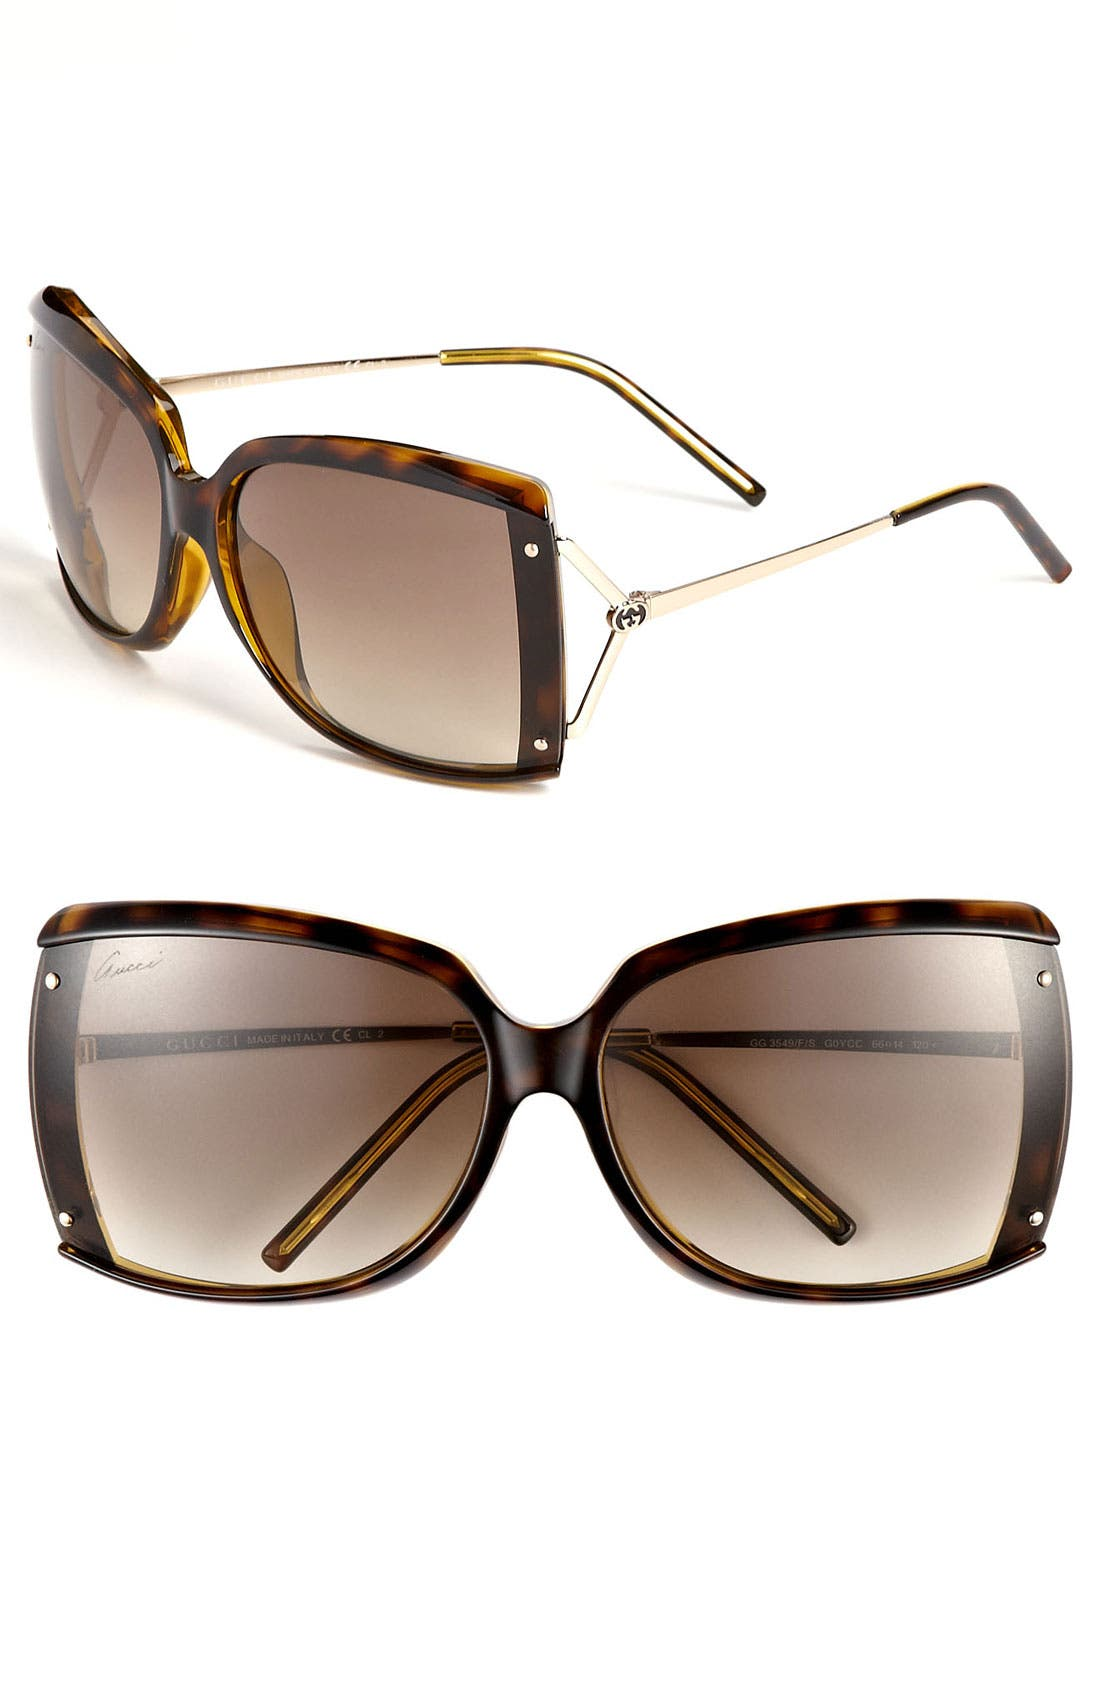 Alternate Image 1 Selected - Gucci 66mm Special Fit Sunglasses